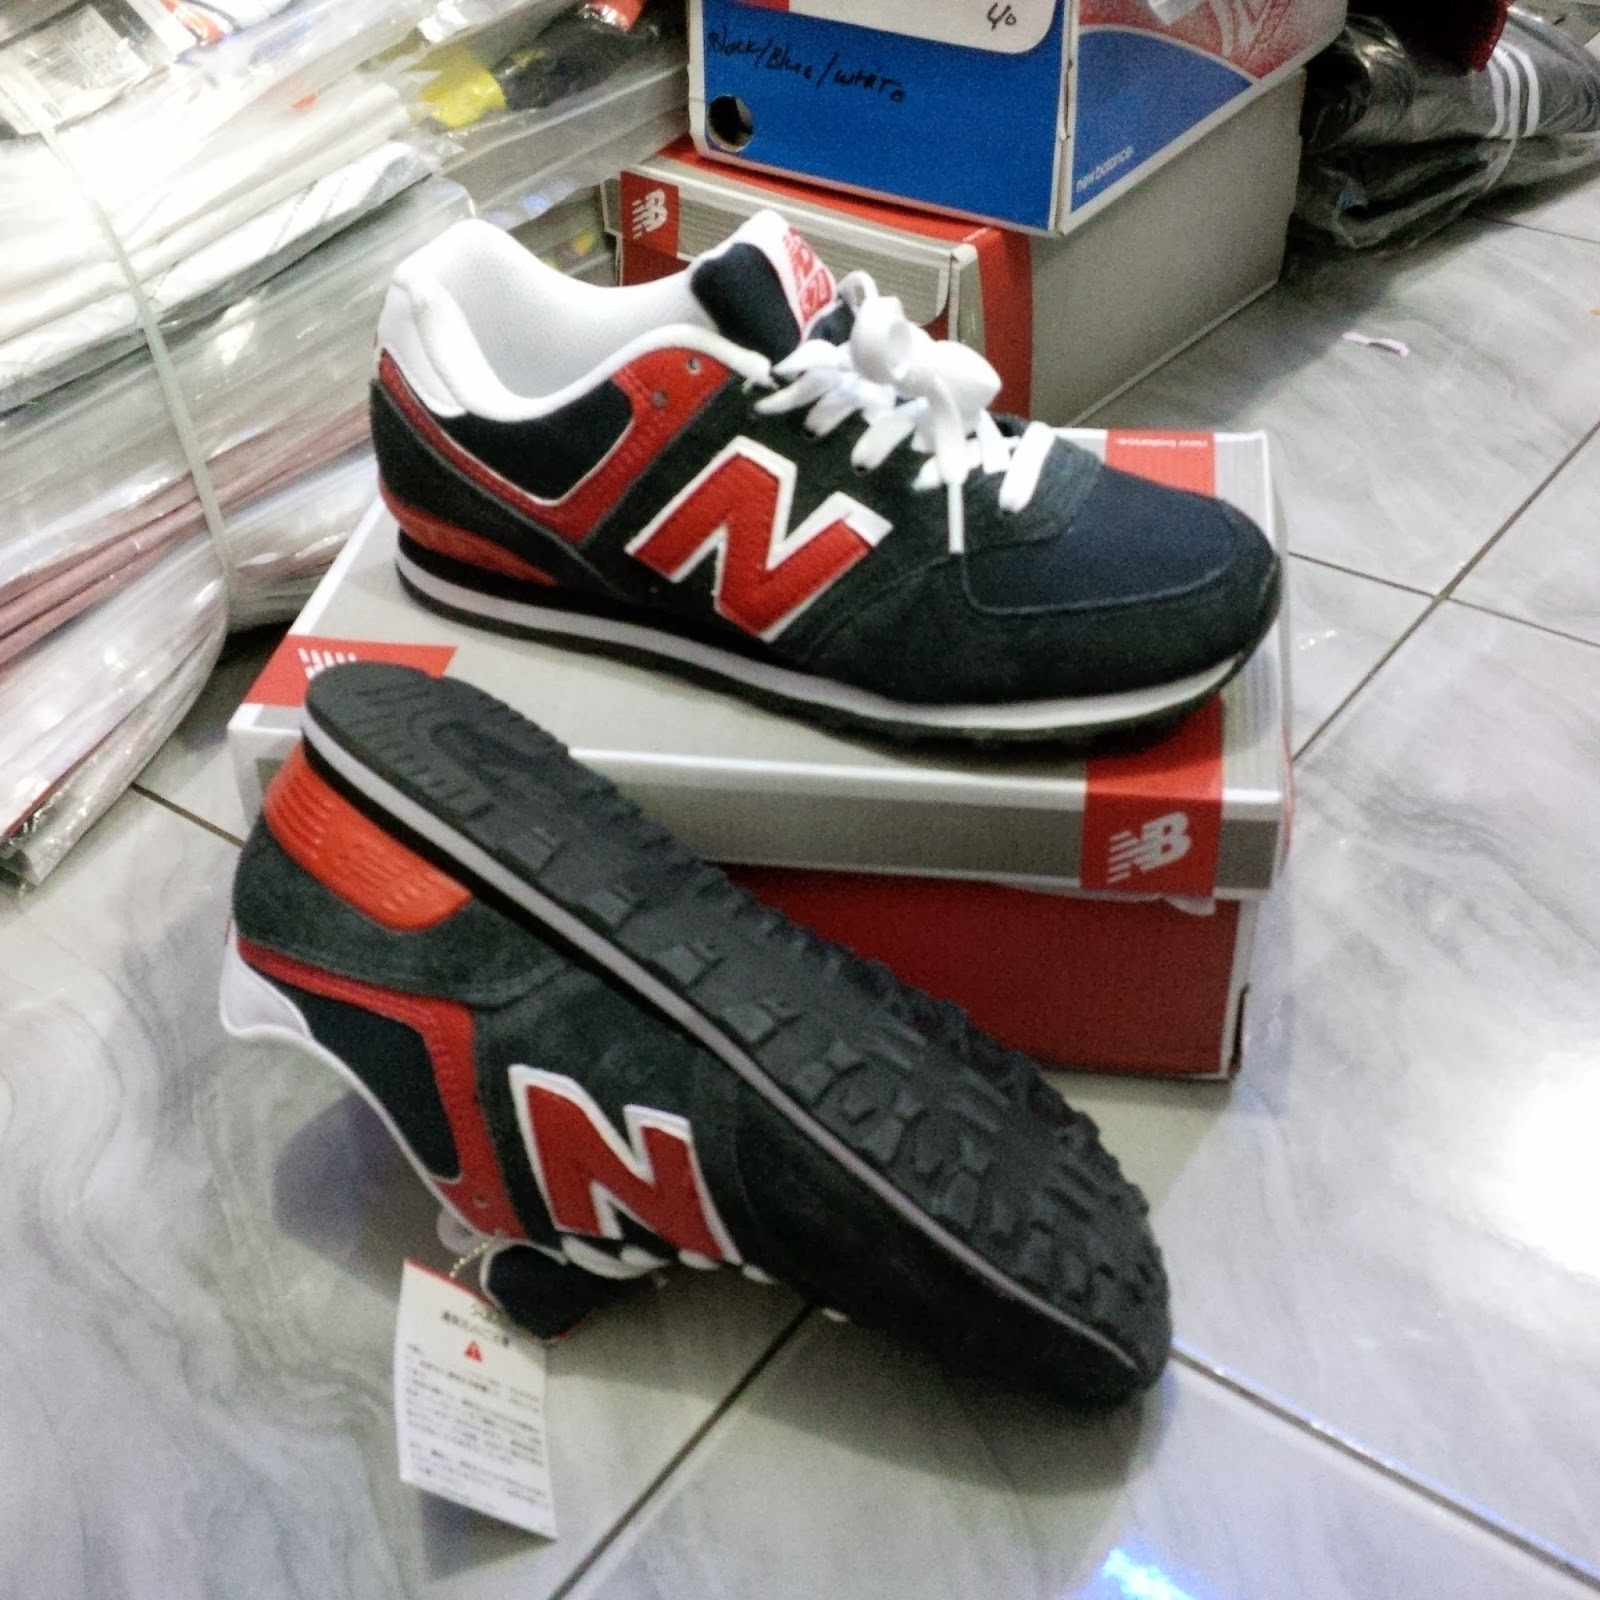 SEPATU NEW BALANCE MEN MADE IN VIETNAM 574 CLASSIC ABU OREN PUTIH ... 14ca1738b6